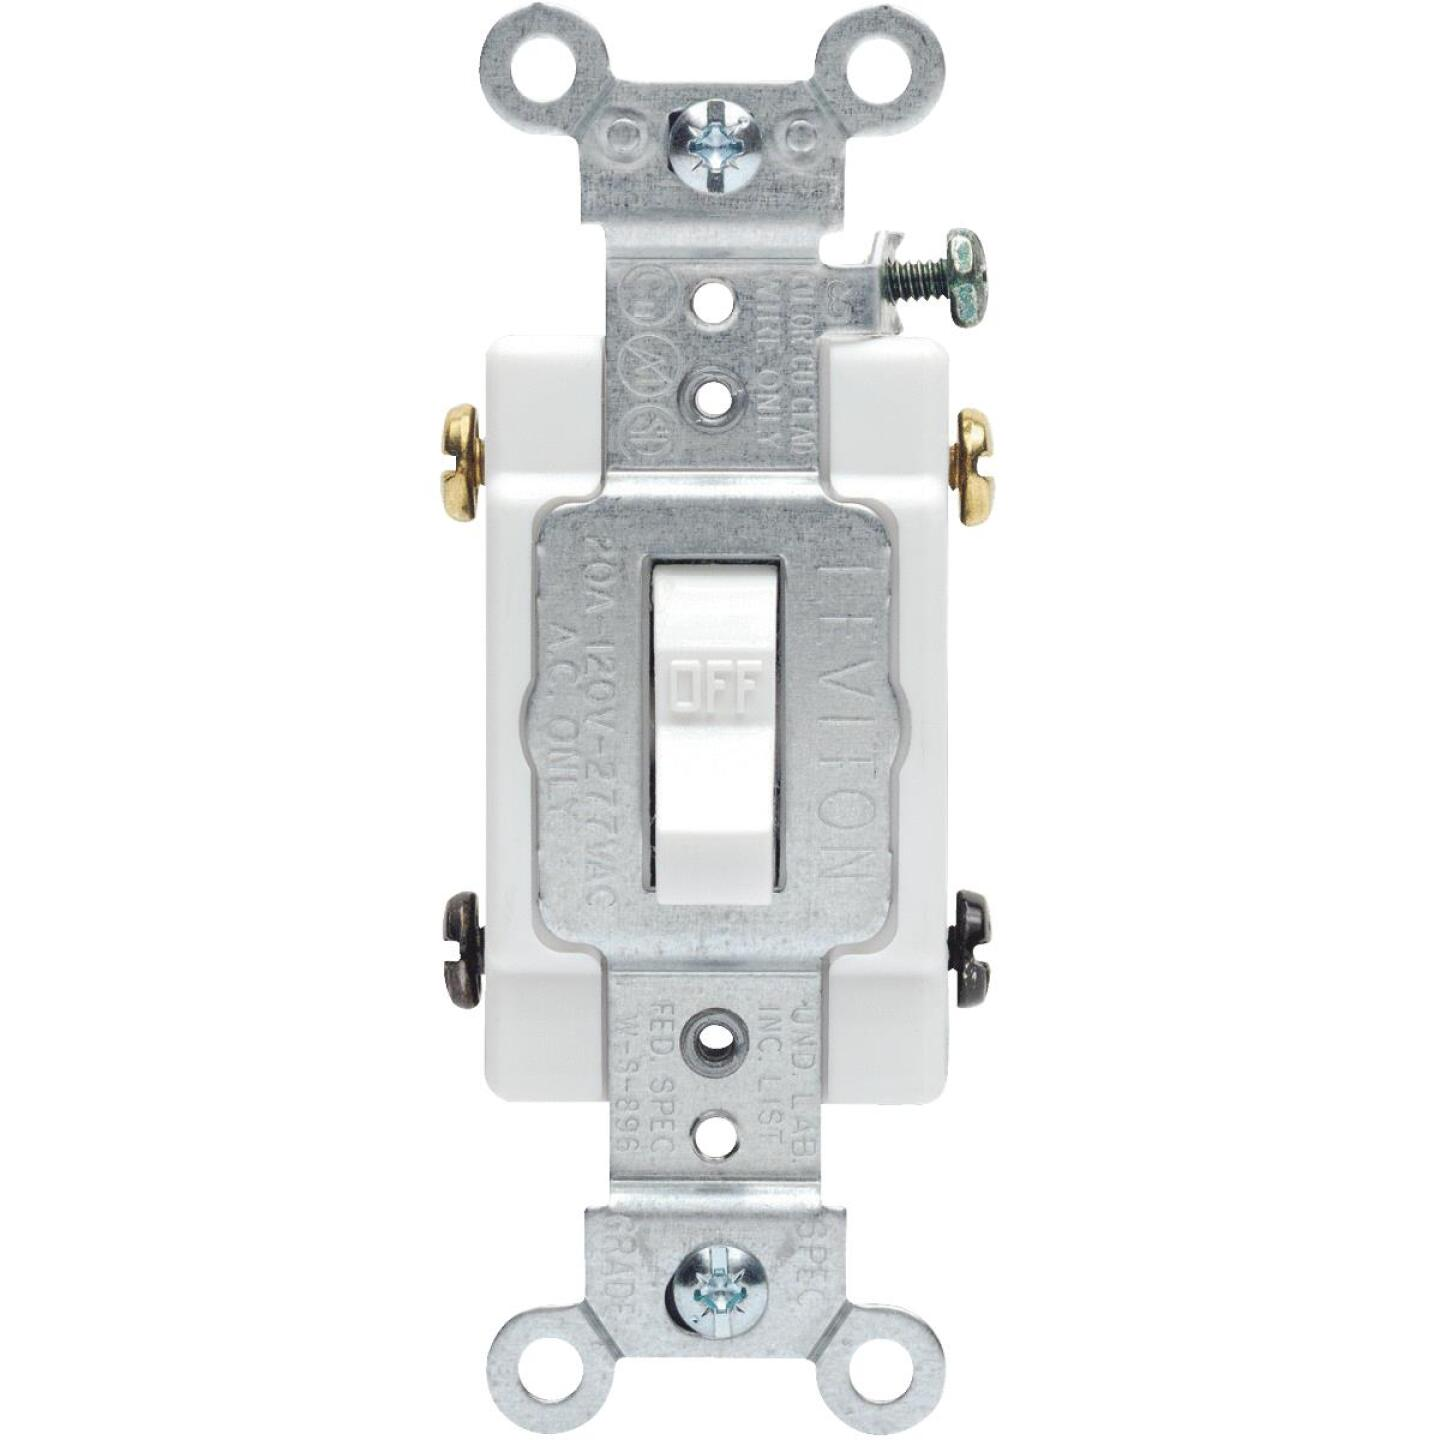 Leviton Toggle White 20A Grounded Quiet Double Pole Switch Image 1